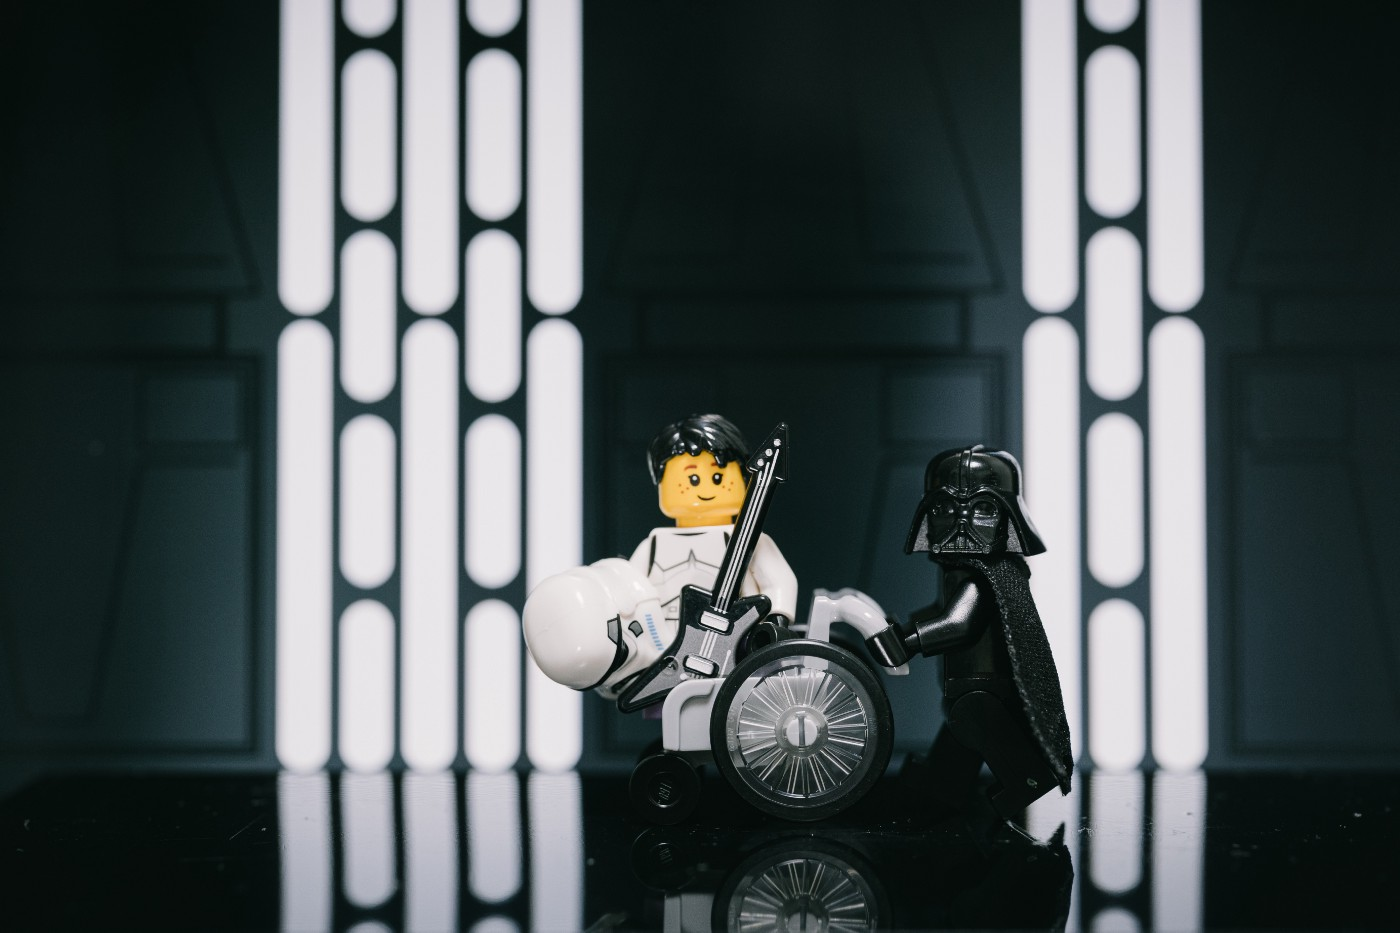 Star Wars lego figurines